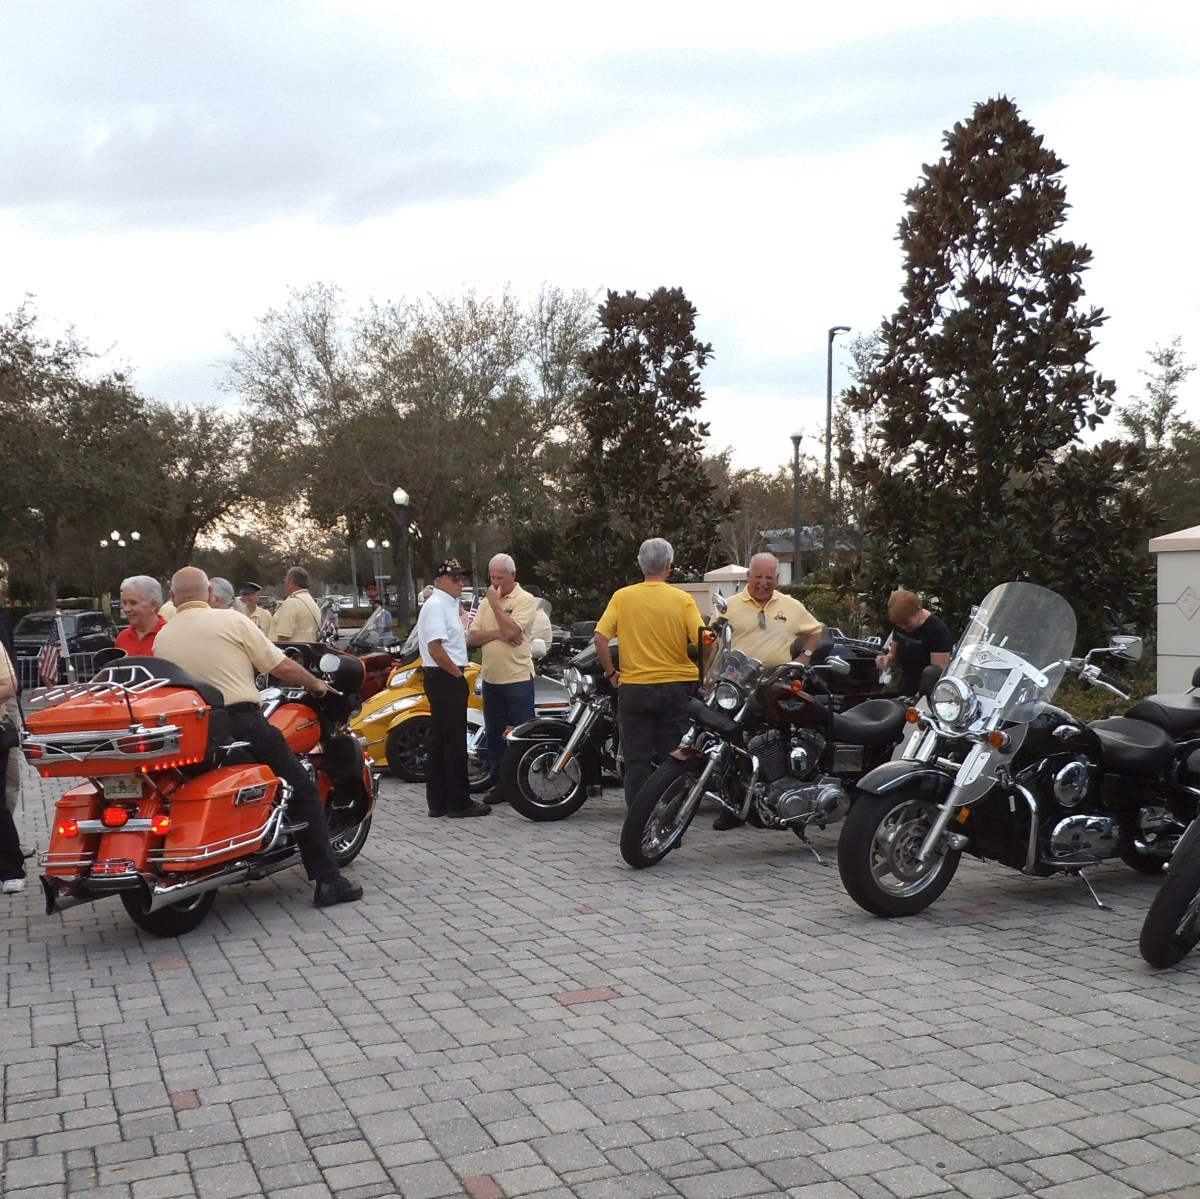 The SOBs (Solivita Older Bikers) gather to ride in the parade.